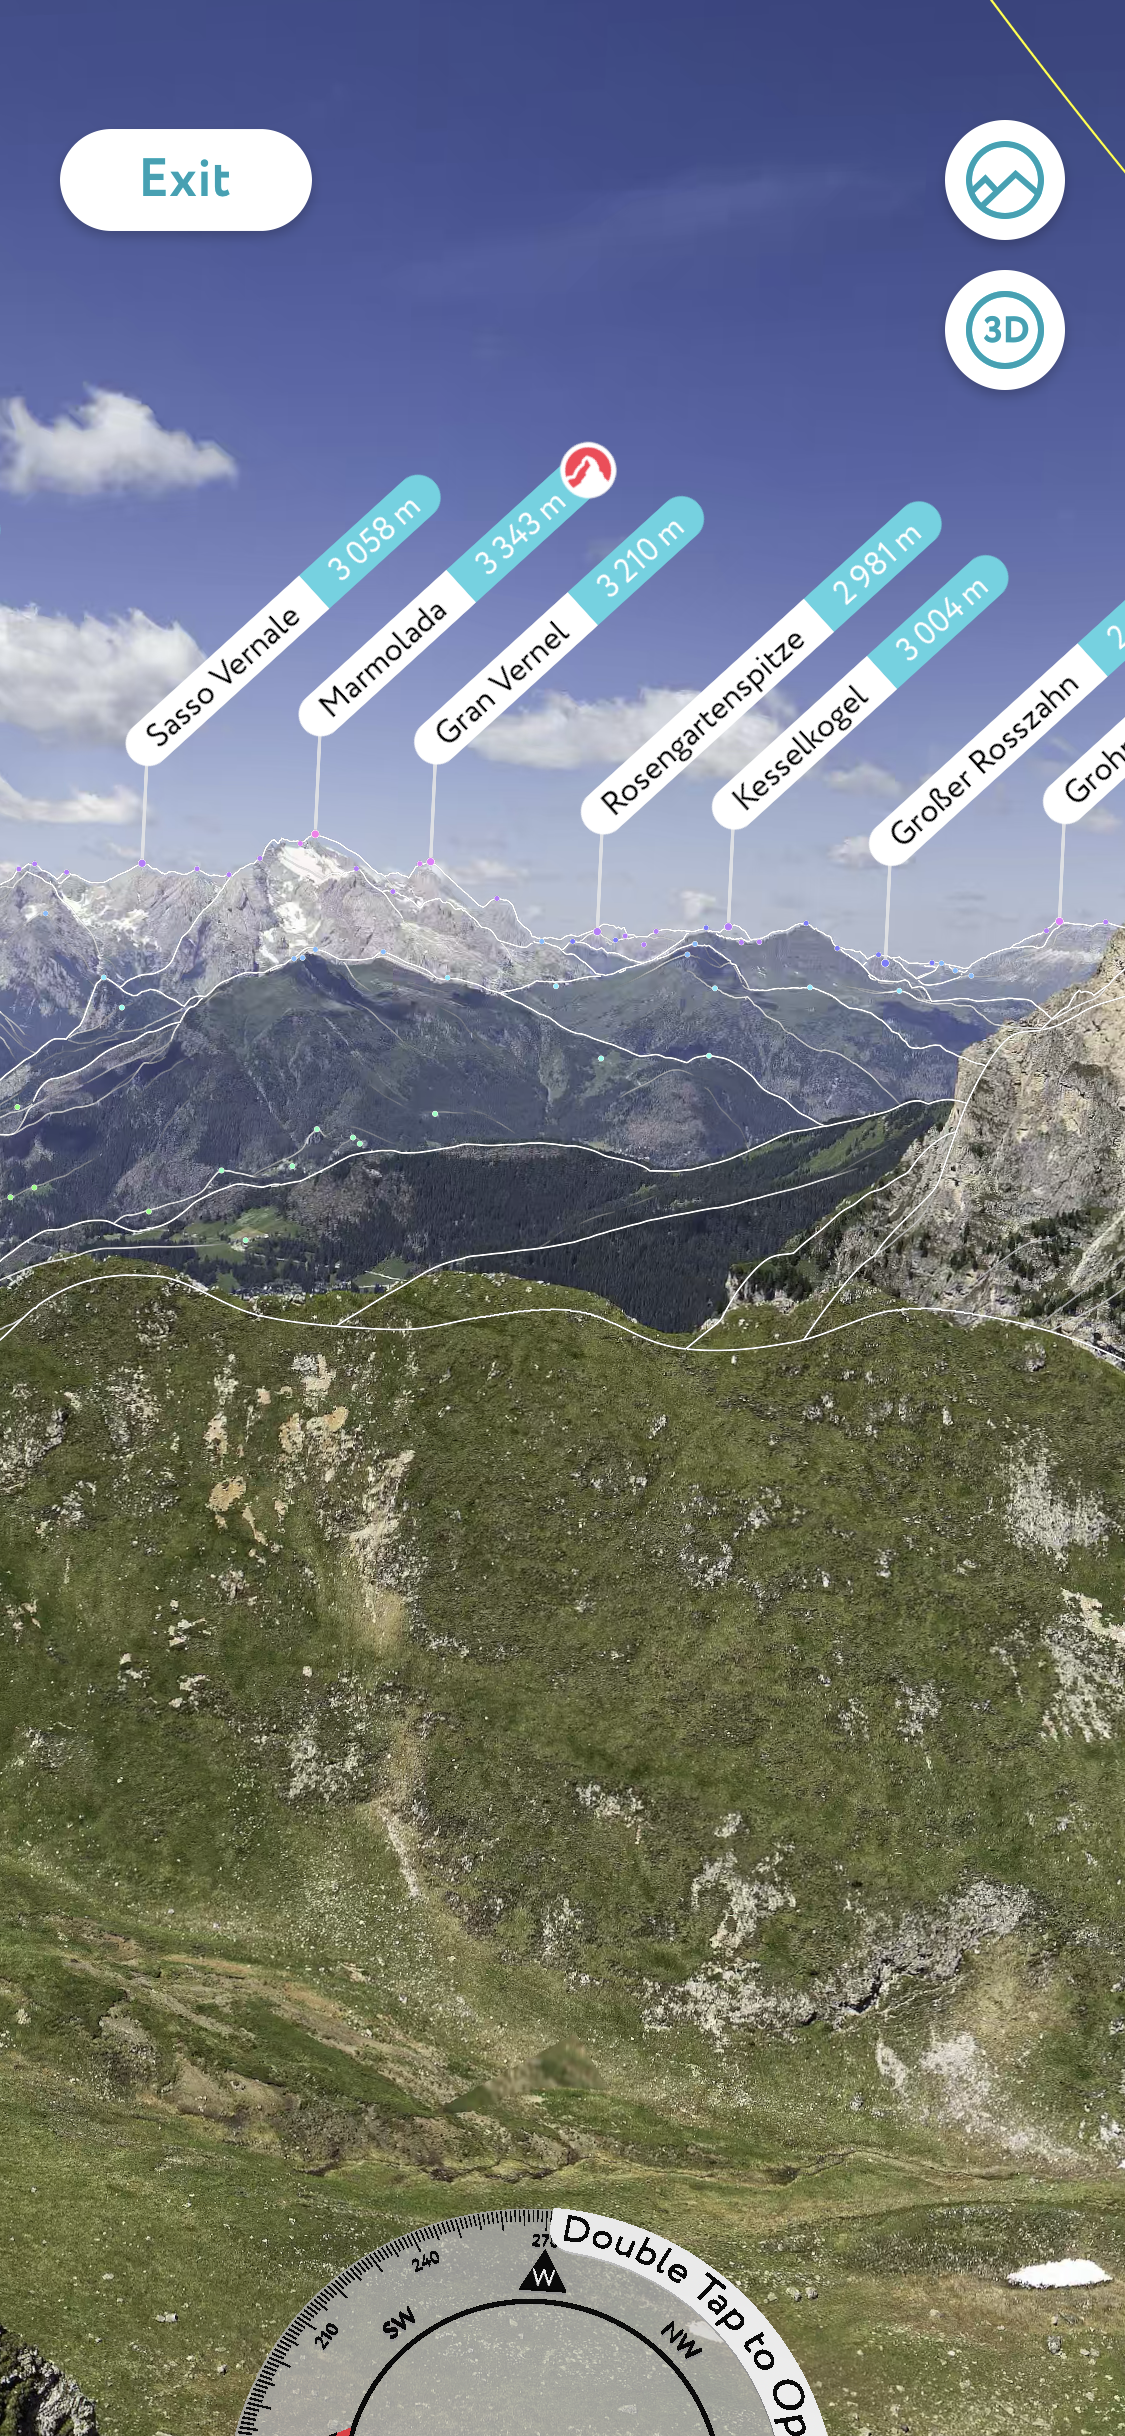 the peak visor app on android and iphone, a view on different mountains